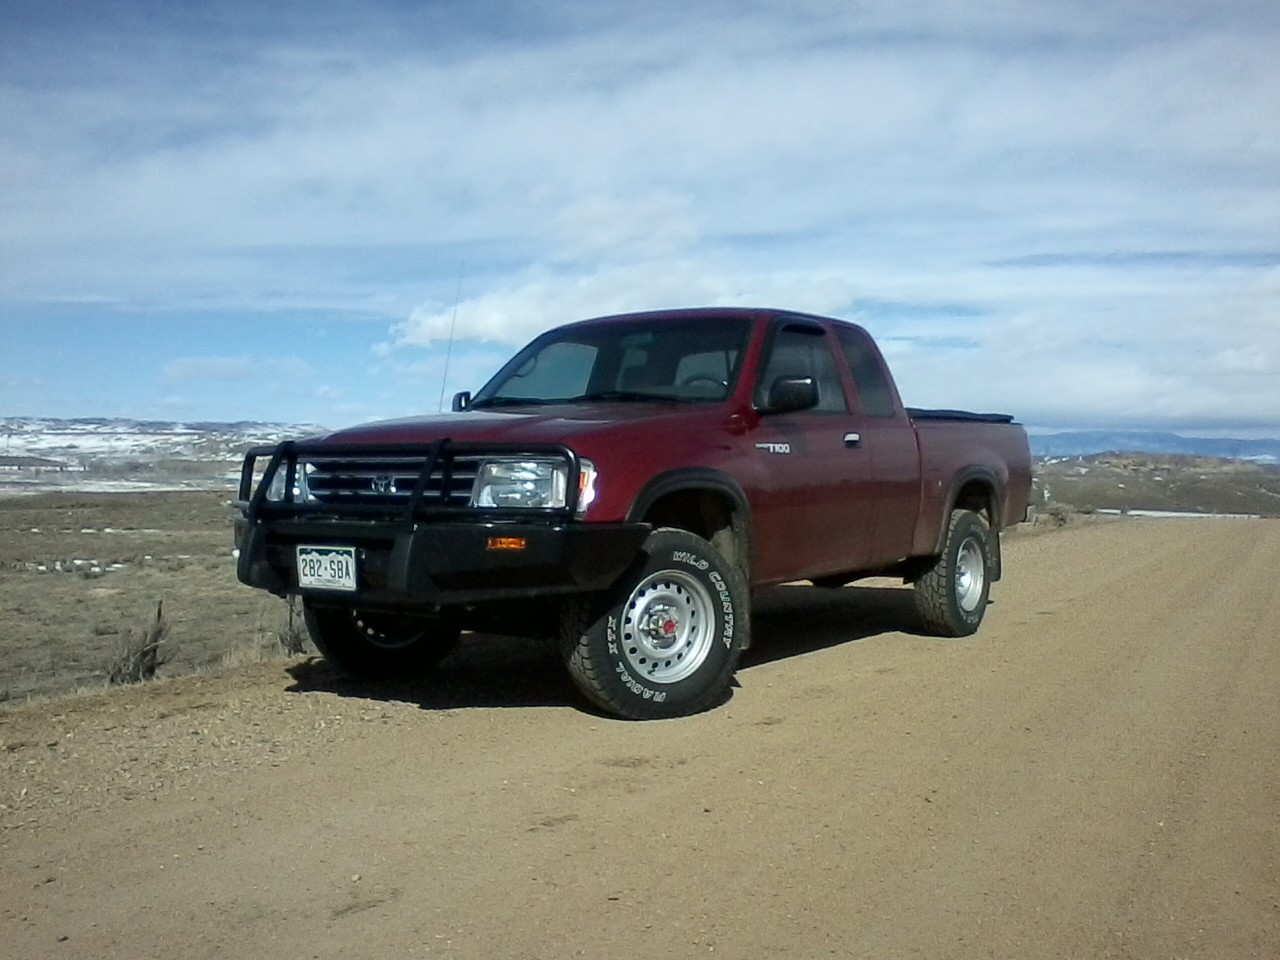 Can Arb Bumper For 80 100 Series Cruiser Be Used On 1st Gen Tundra Ih8mud Forum